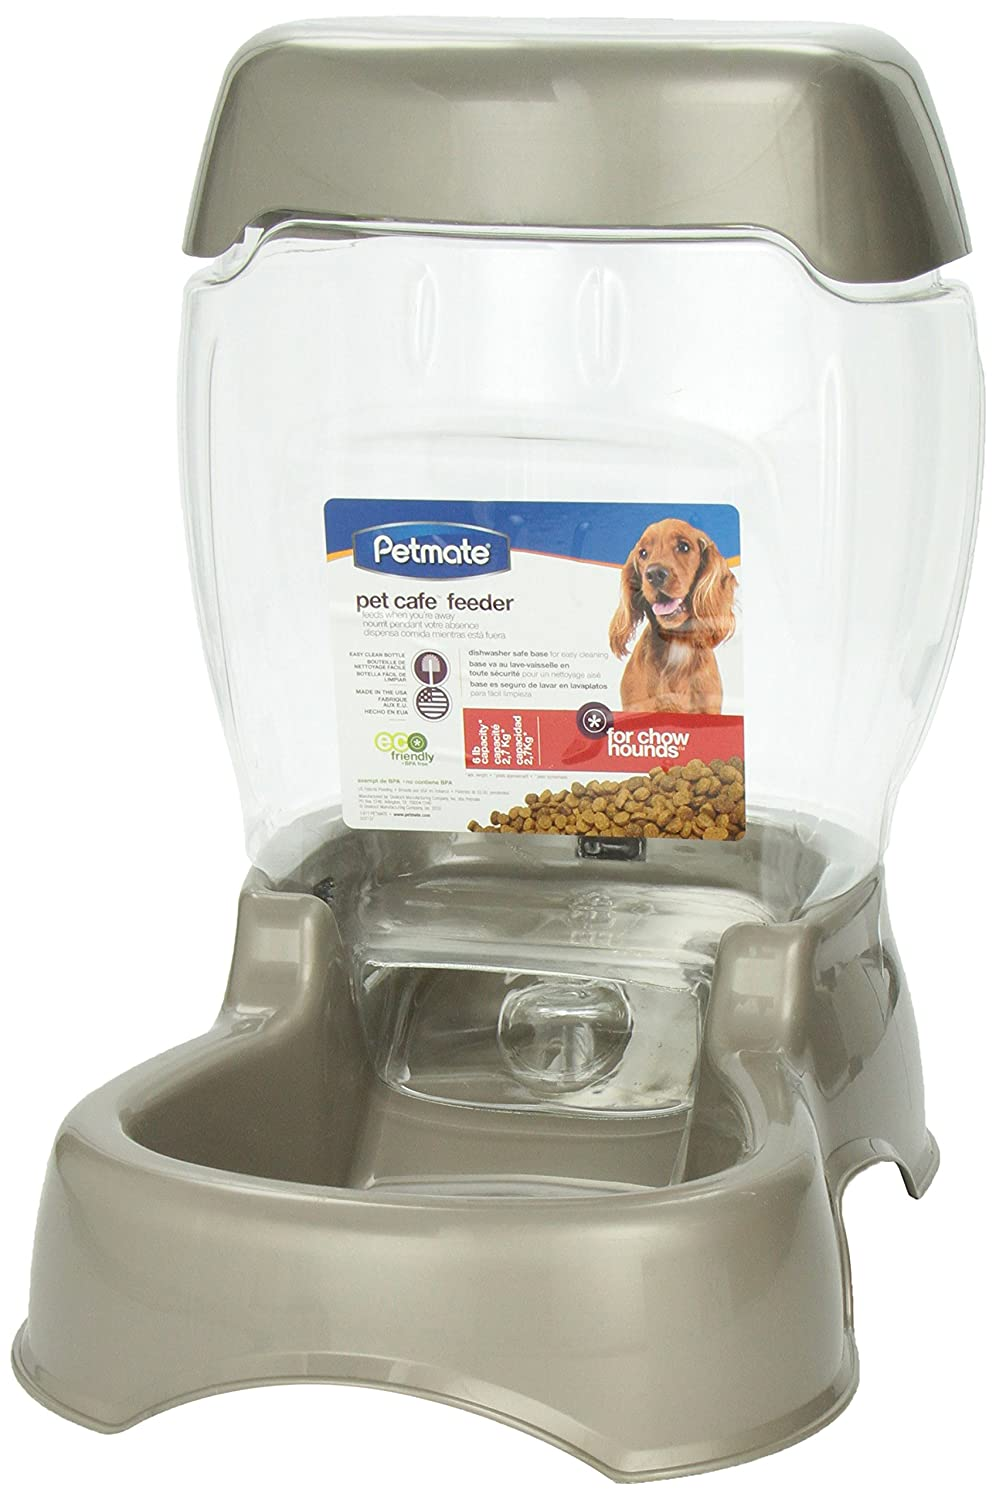 The Best Automatic Cat Feeder Reviews & A Detailed Buying Guide 4